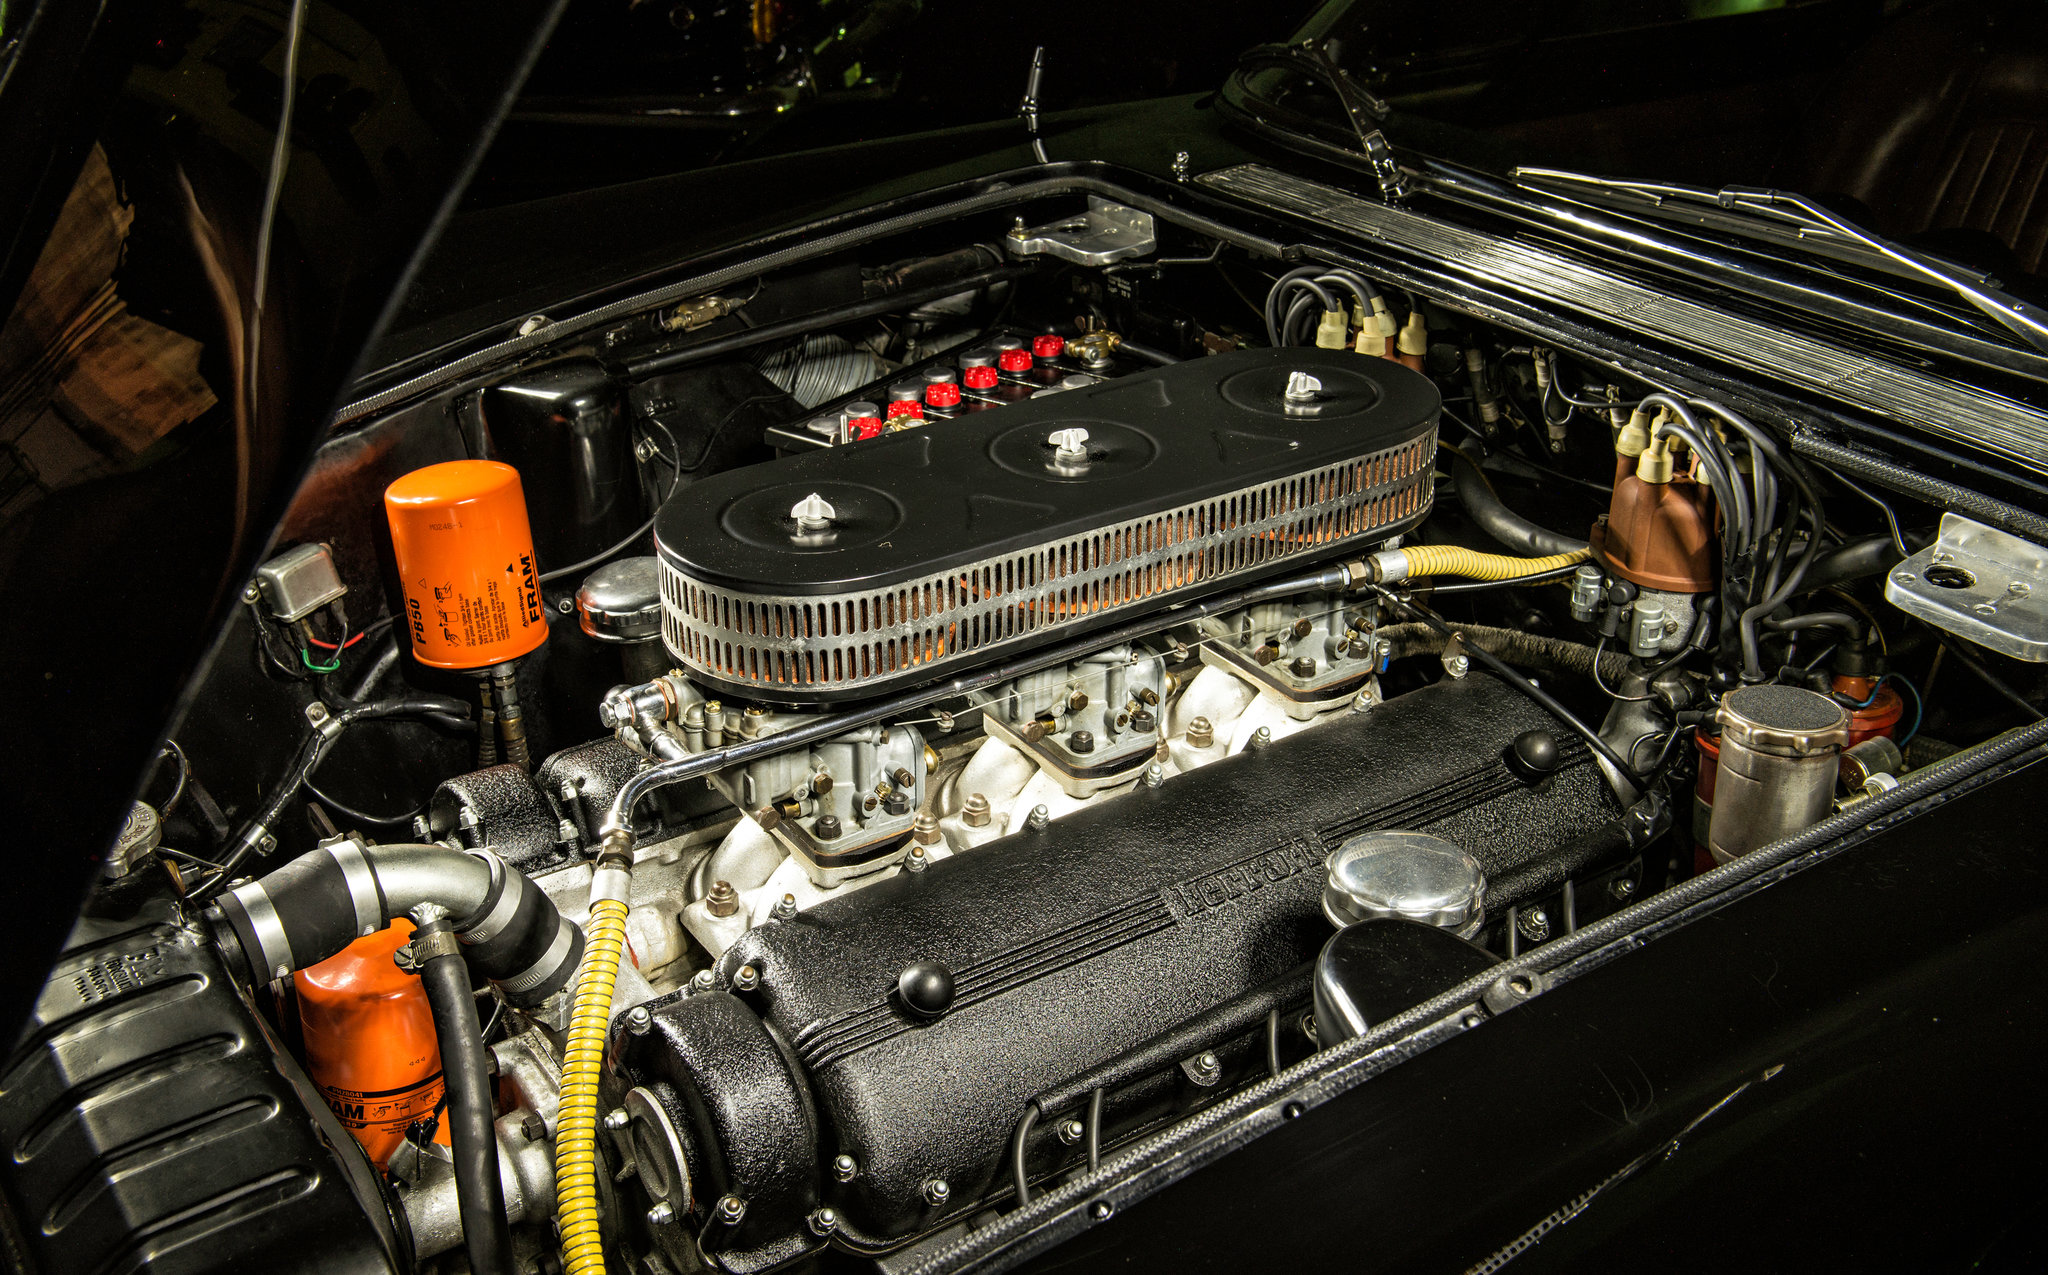 Engine of the Ferrari 400 Superamerica